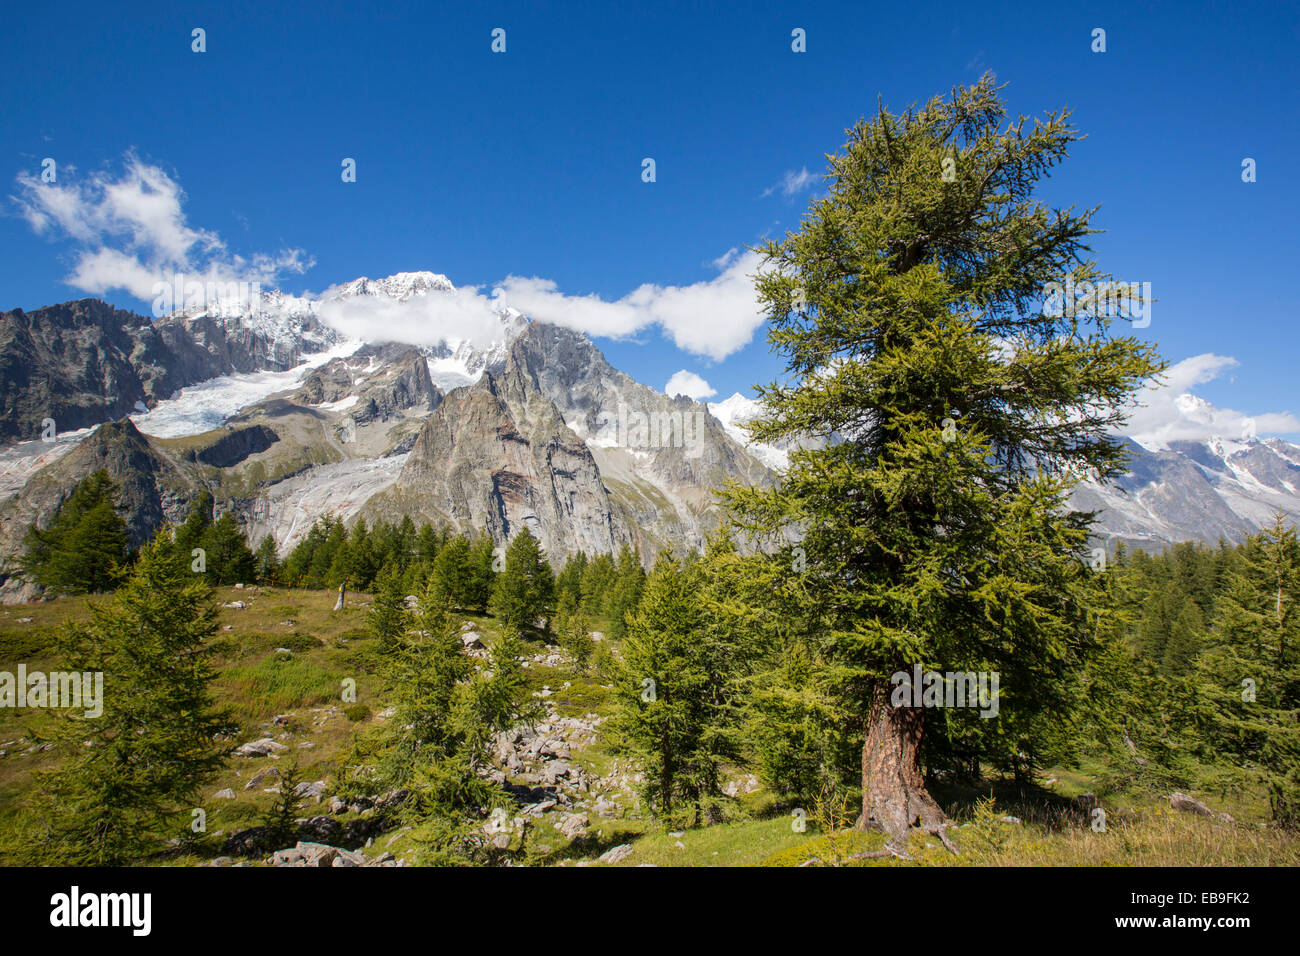 Looking towards Mont Blanc from above Val Veny, Italy. - Stock Image